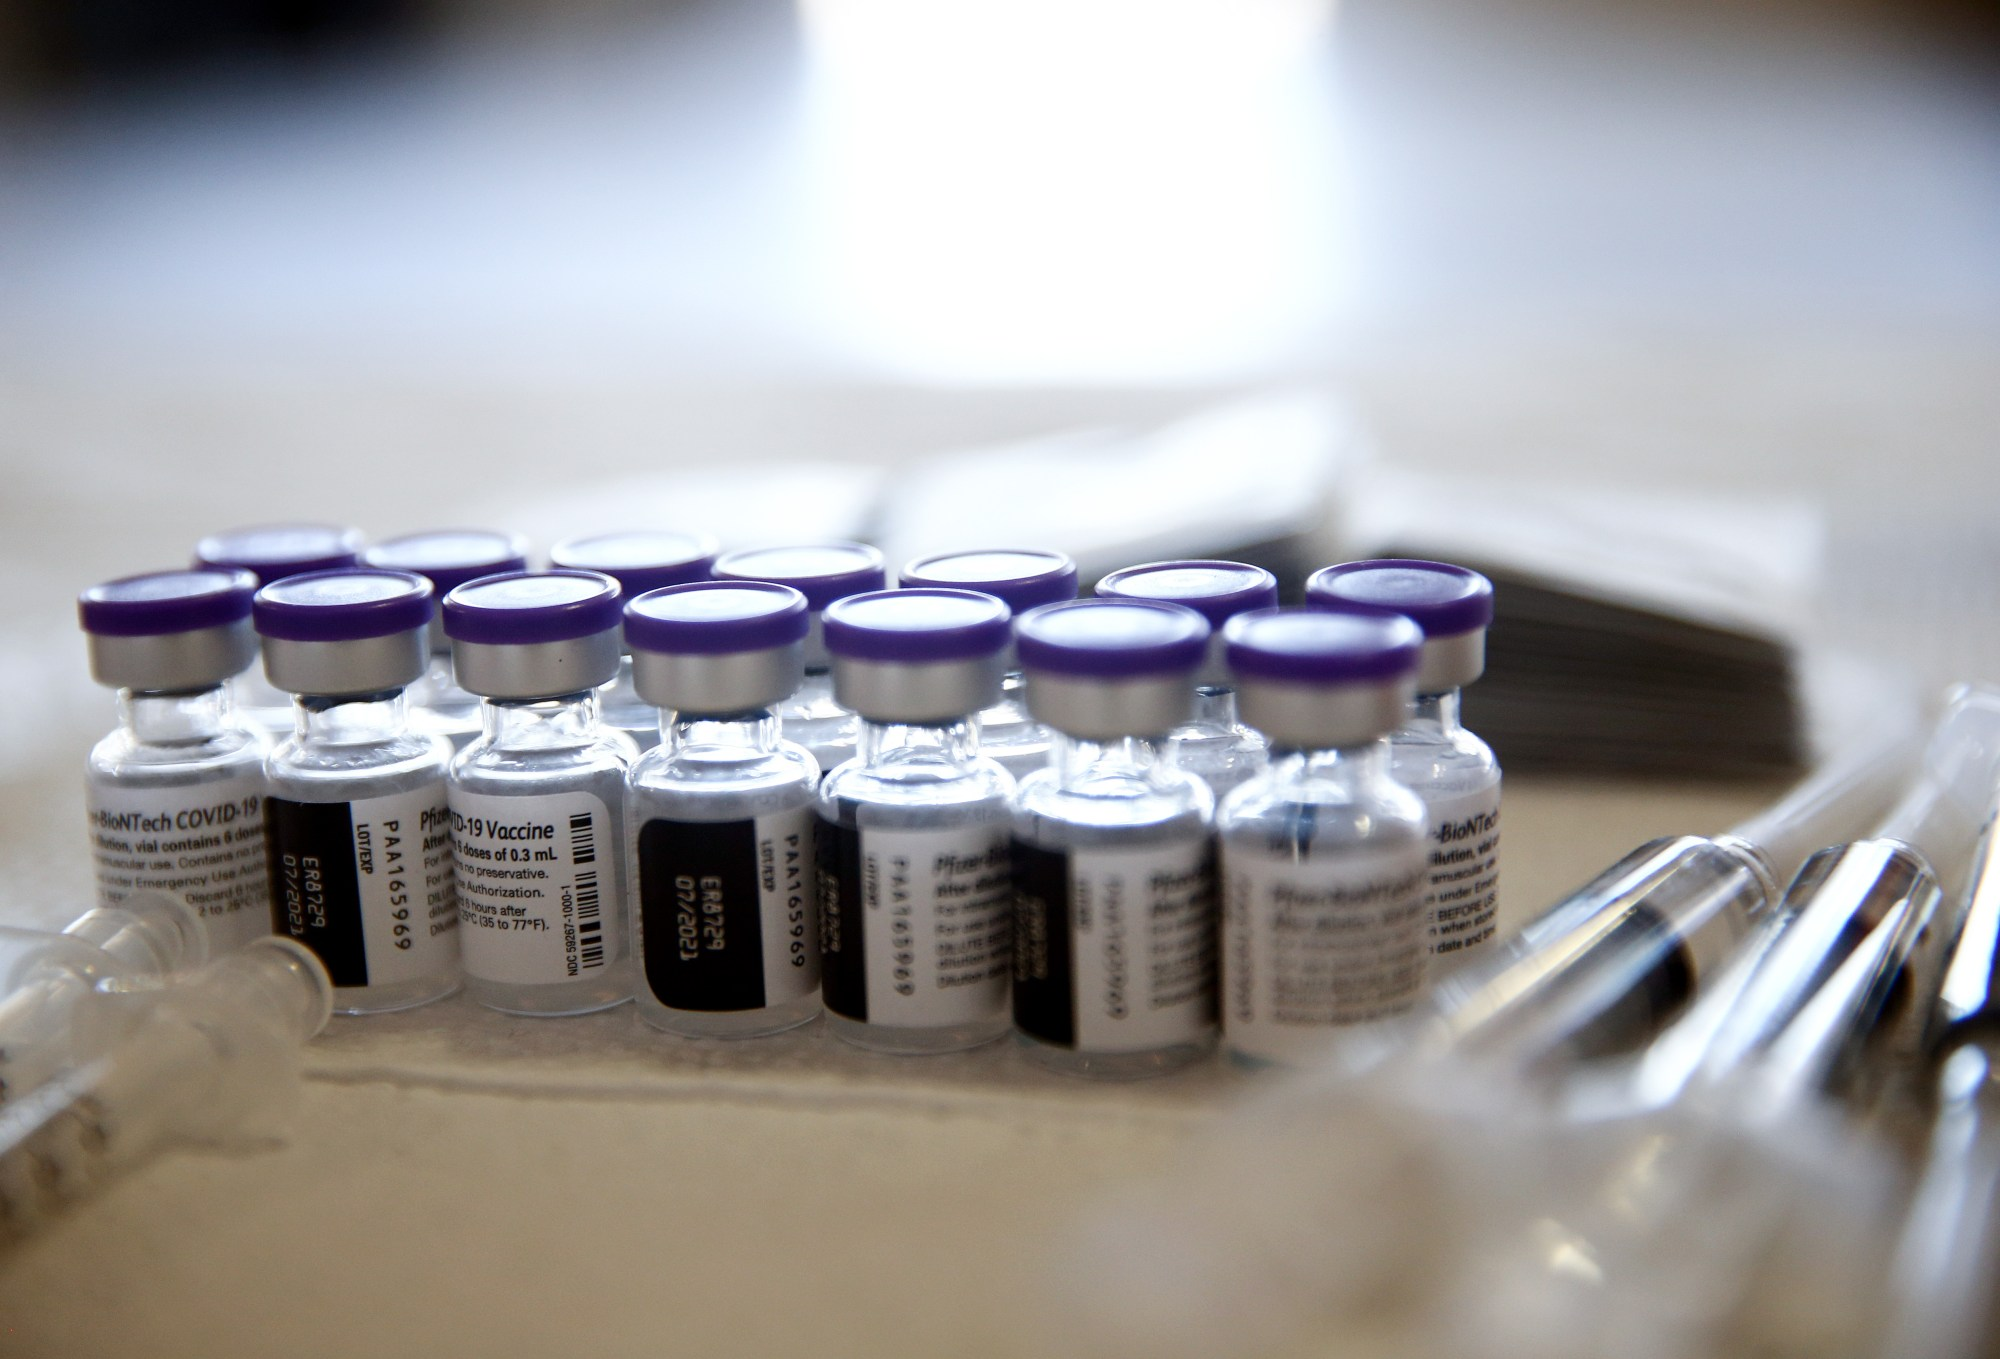 Vials containing doses of the Pfizer COVID-19 vaccine are viewed at a clinic targeting minority community members at St. Patrick's Catholic Church on April 9, 2021 in Los Angeles, California. (Photo by Mario Tama/Getty Images)